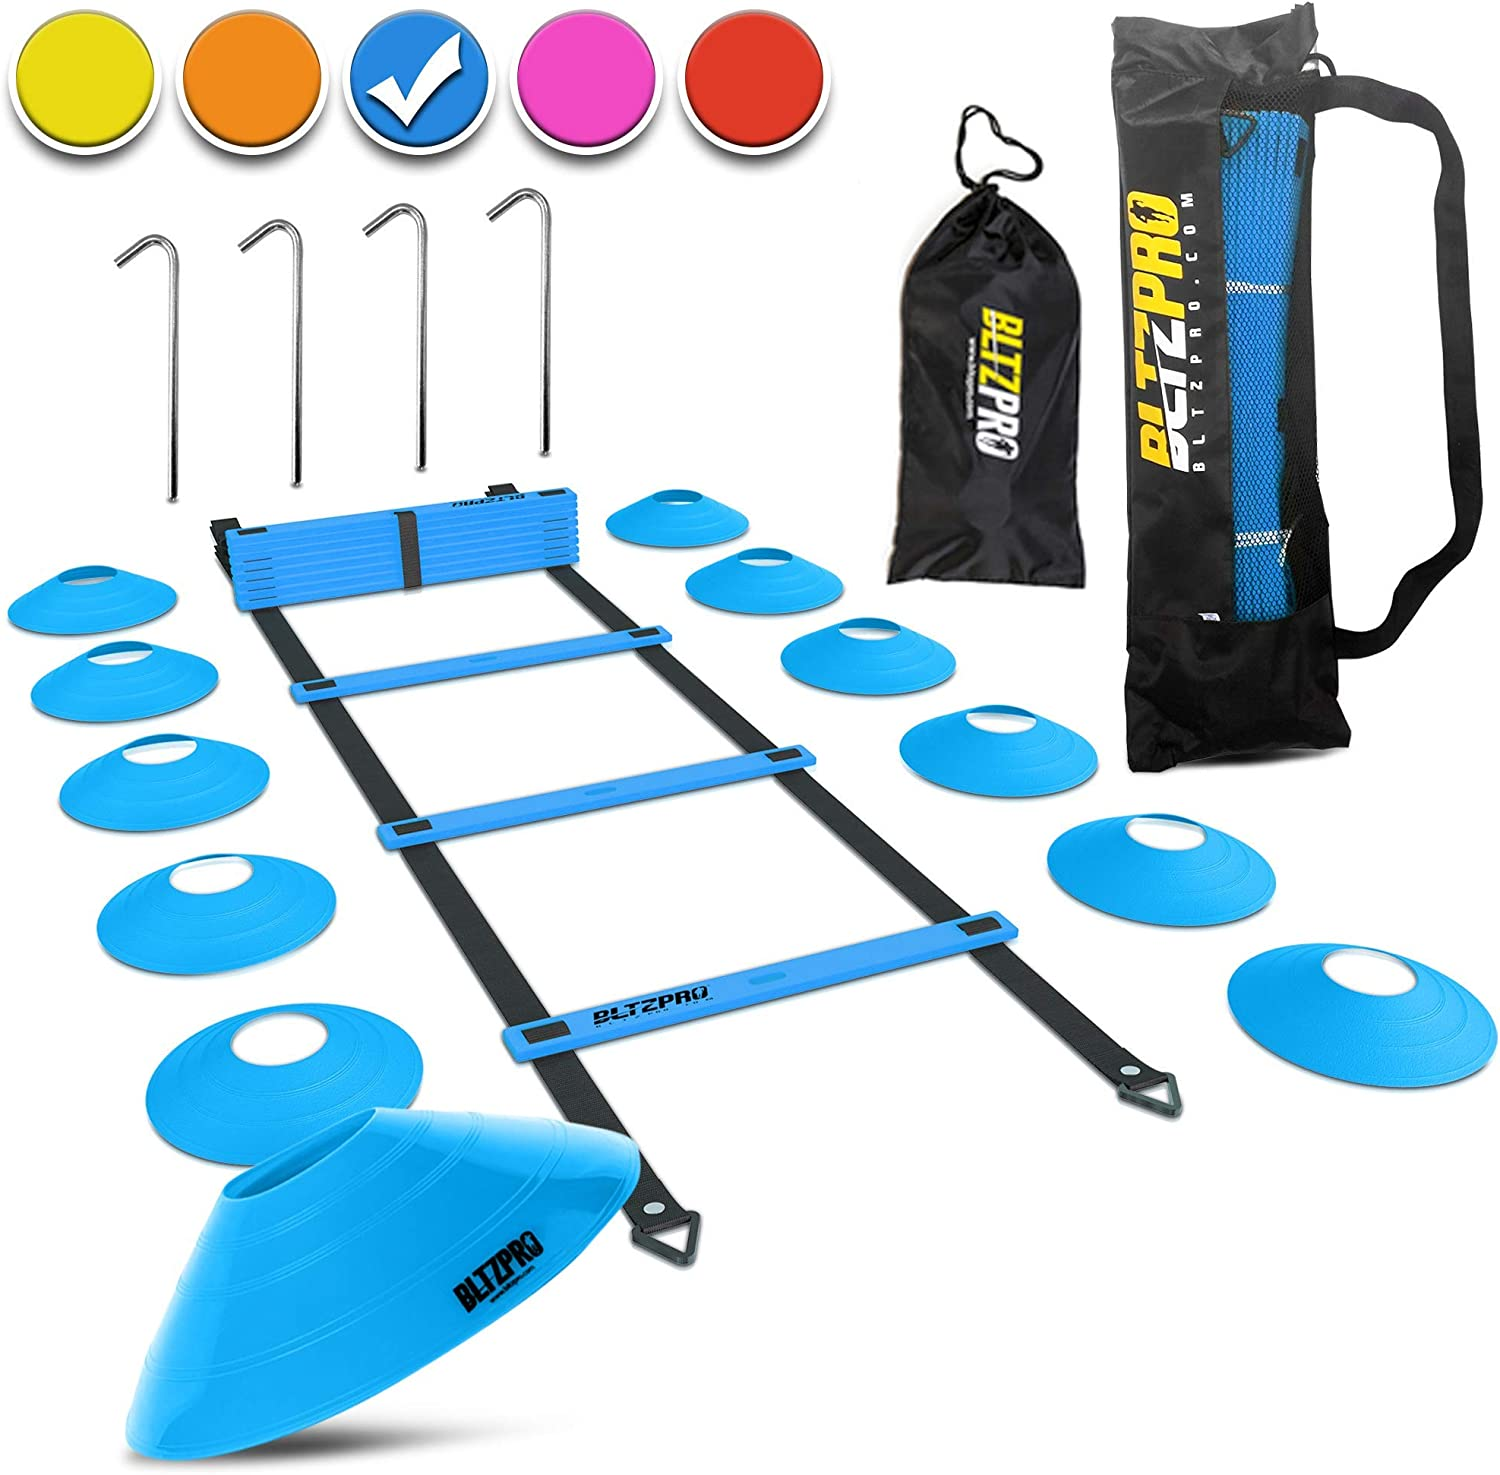 Durable Speed Training Agility Ladder Portable Footwork Exercise Tackle for Football Soccer Sports